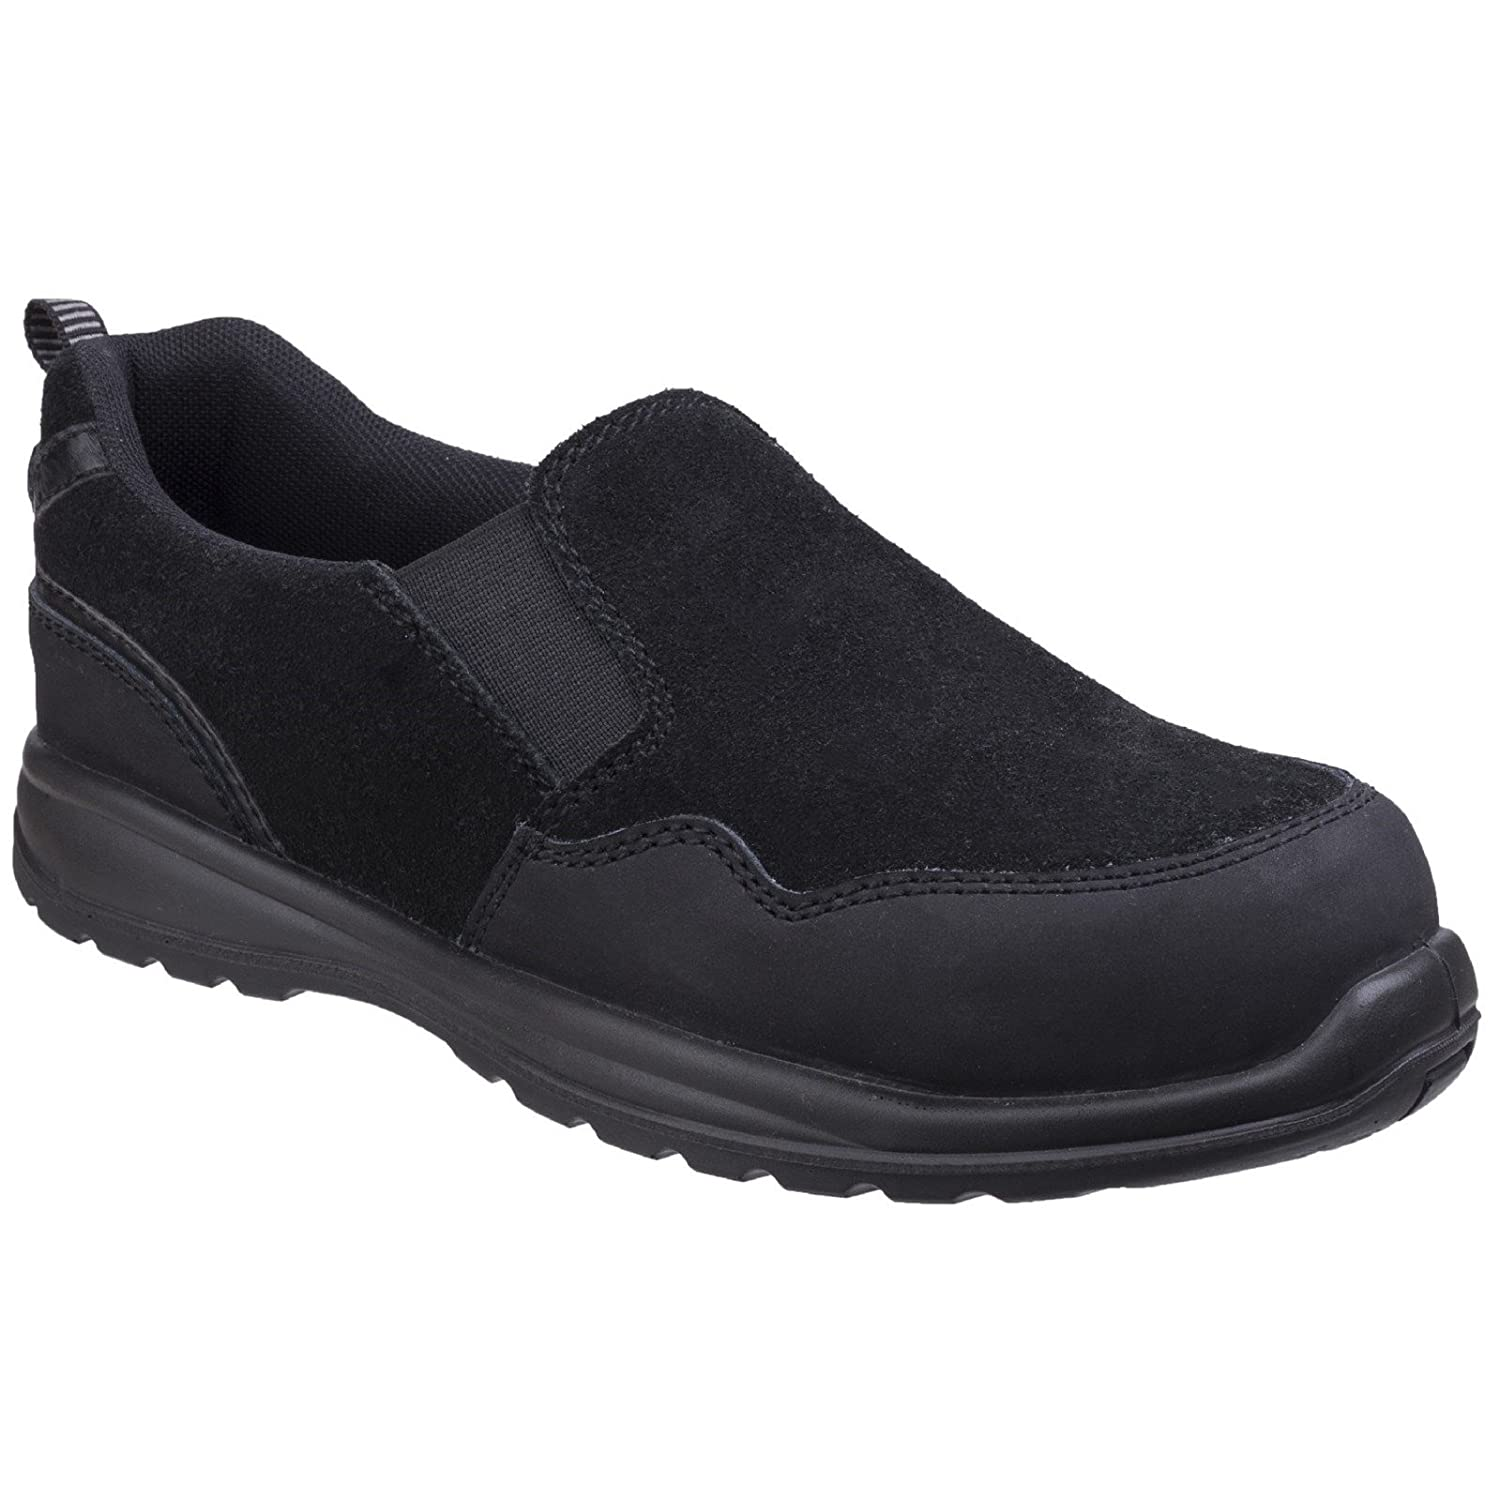 Amblers Safety AS603C Womens/Ladies Slip On Safety Shoes